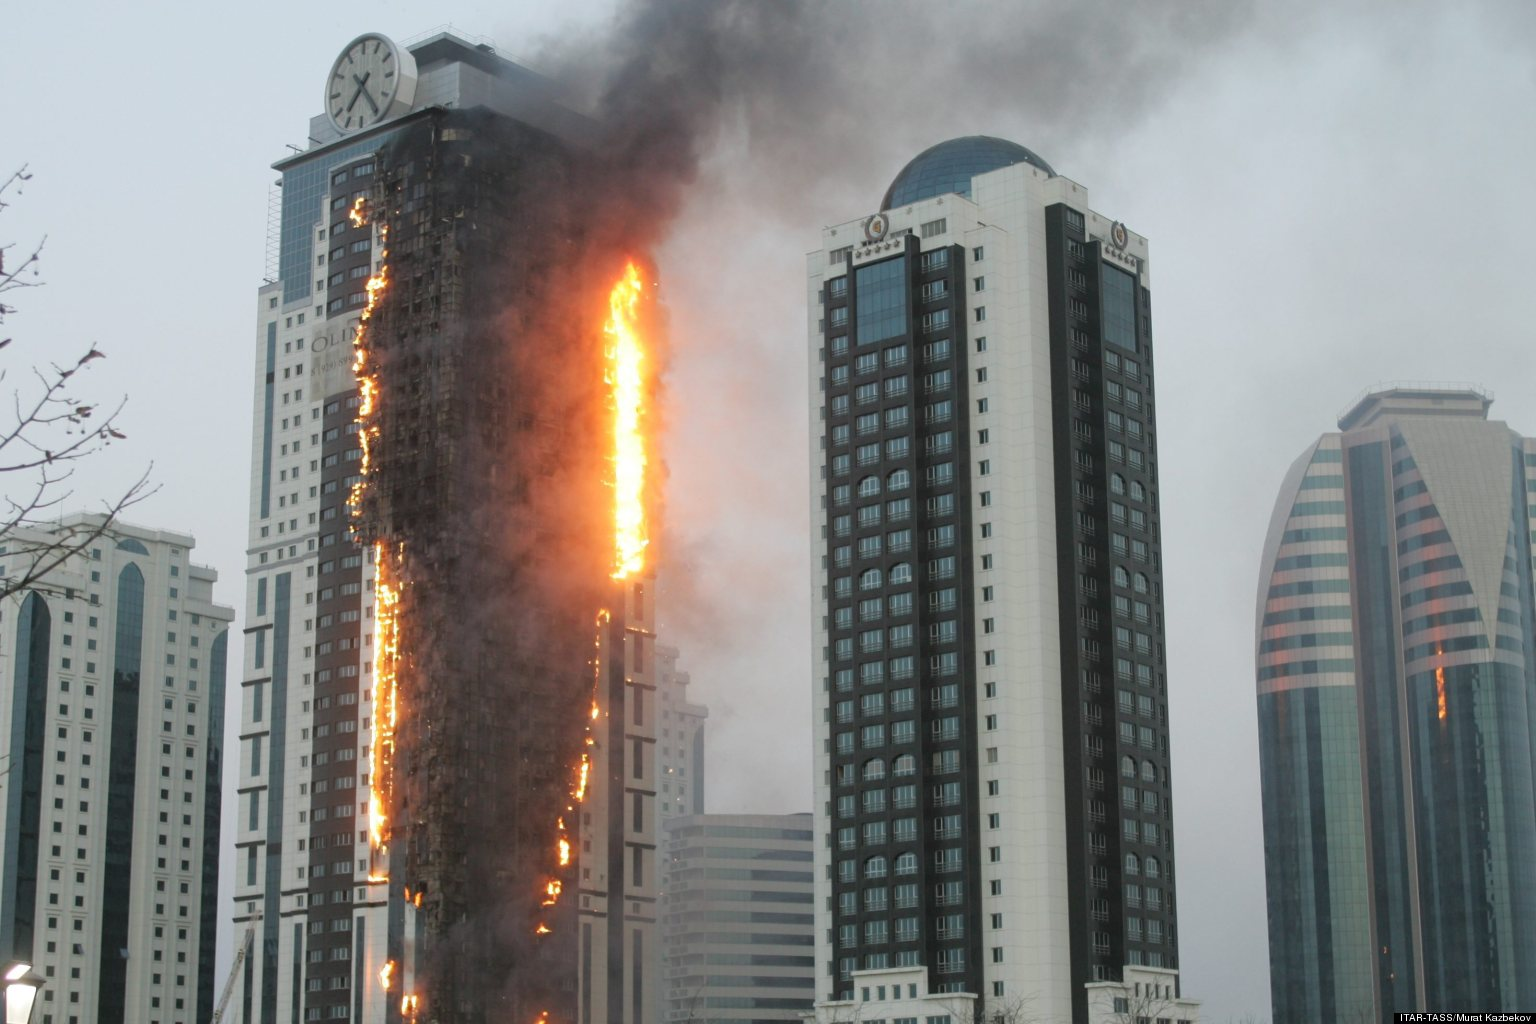 http://i.huffpost.com/gen/1070238/images/o-OLYMPUS-TOWER-FIRE-CHECHNYA-facebook.jpg